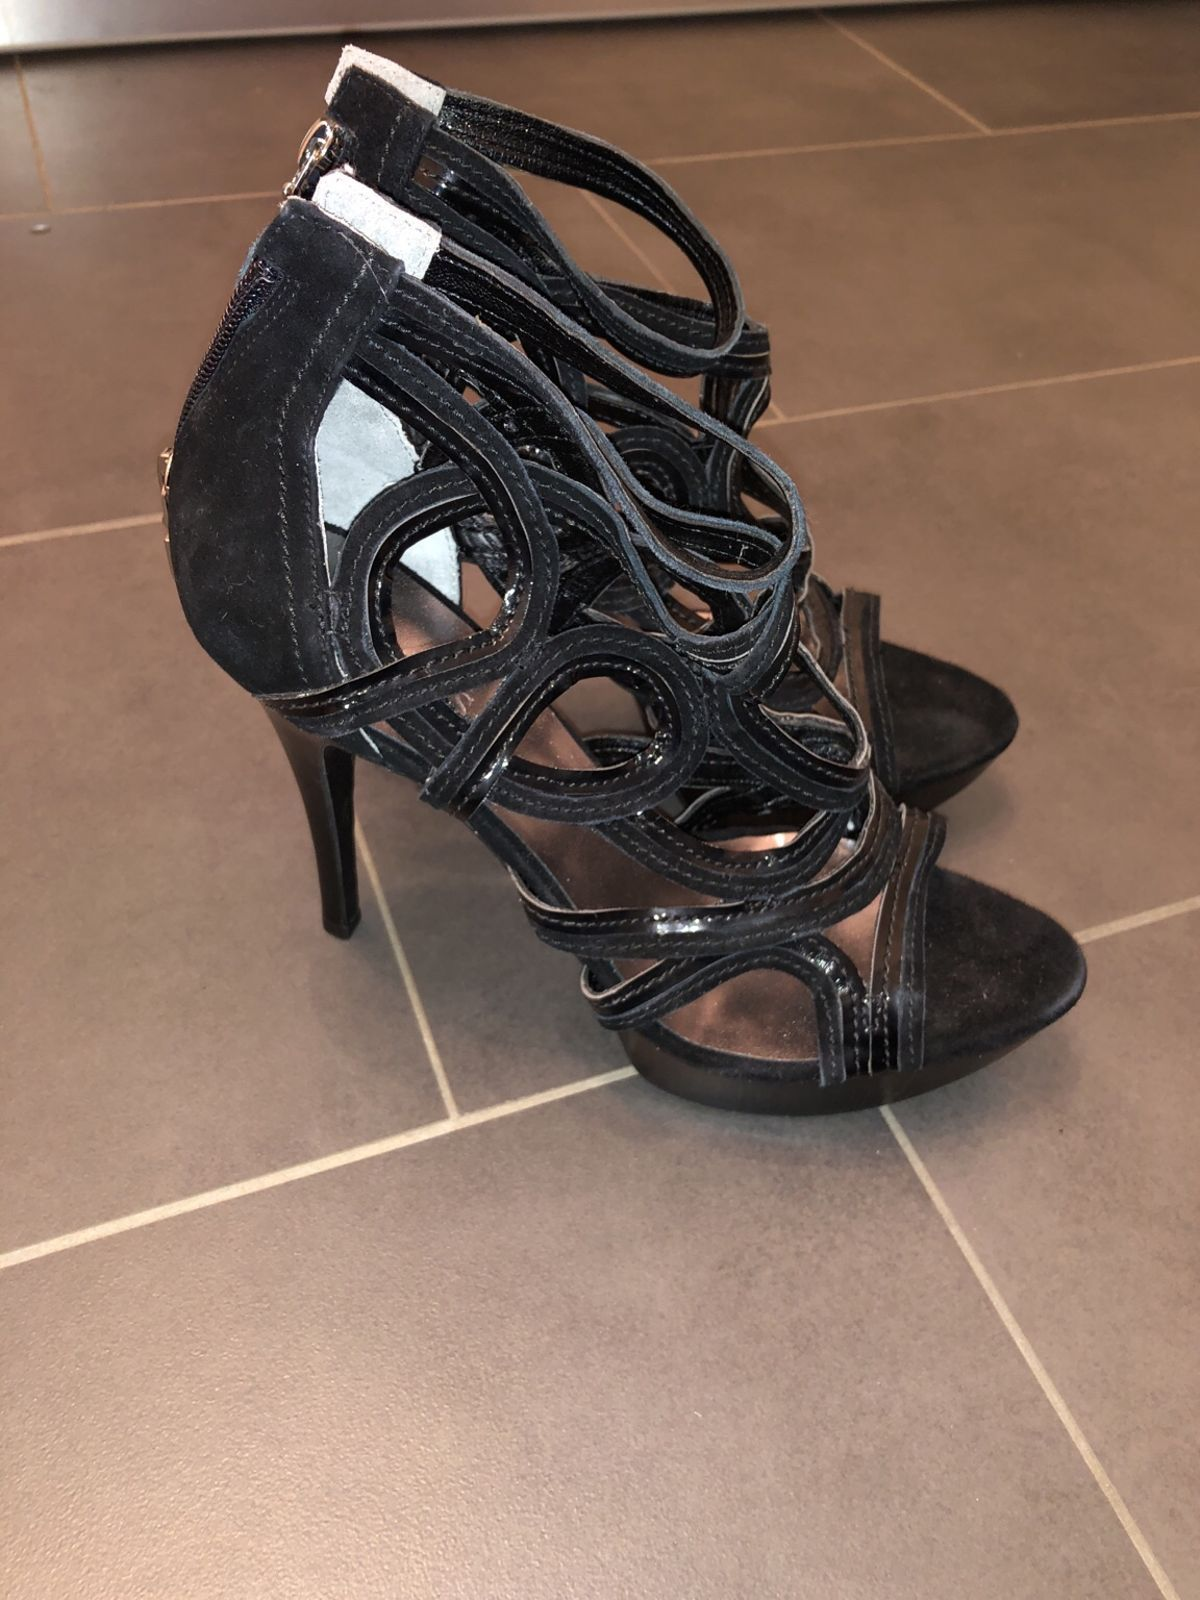 680be0465d Guess High Heels, schwarz in 9300 Wittenbach for CHF 80.00 for sale - Shpock